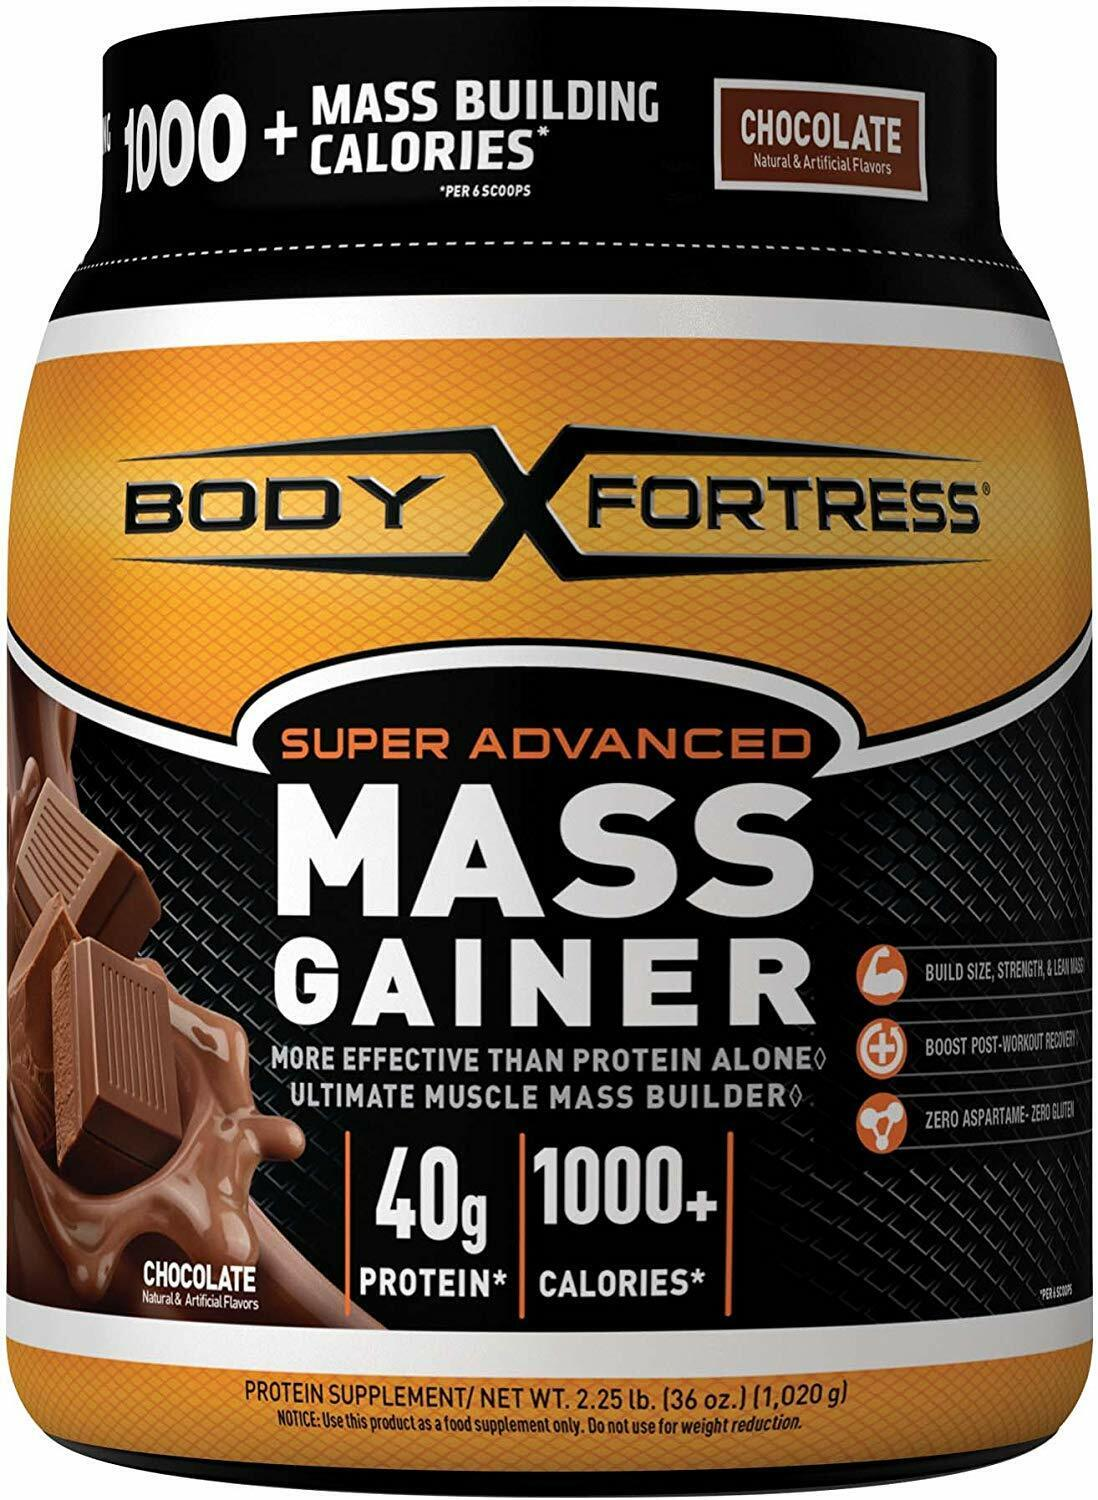 Super Mass Weight Gainer Chocolate Whey Protein Powder Muscl